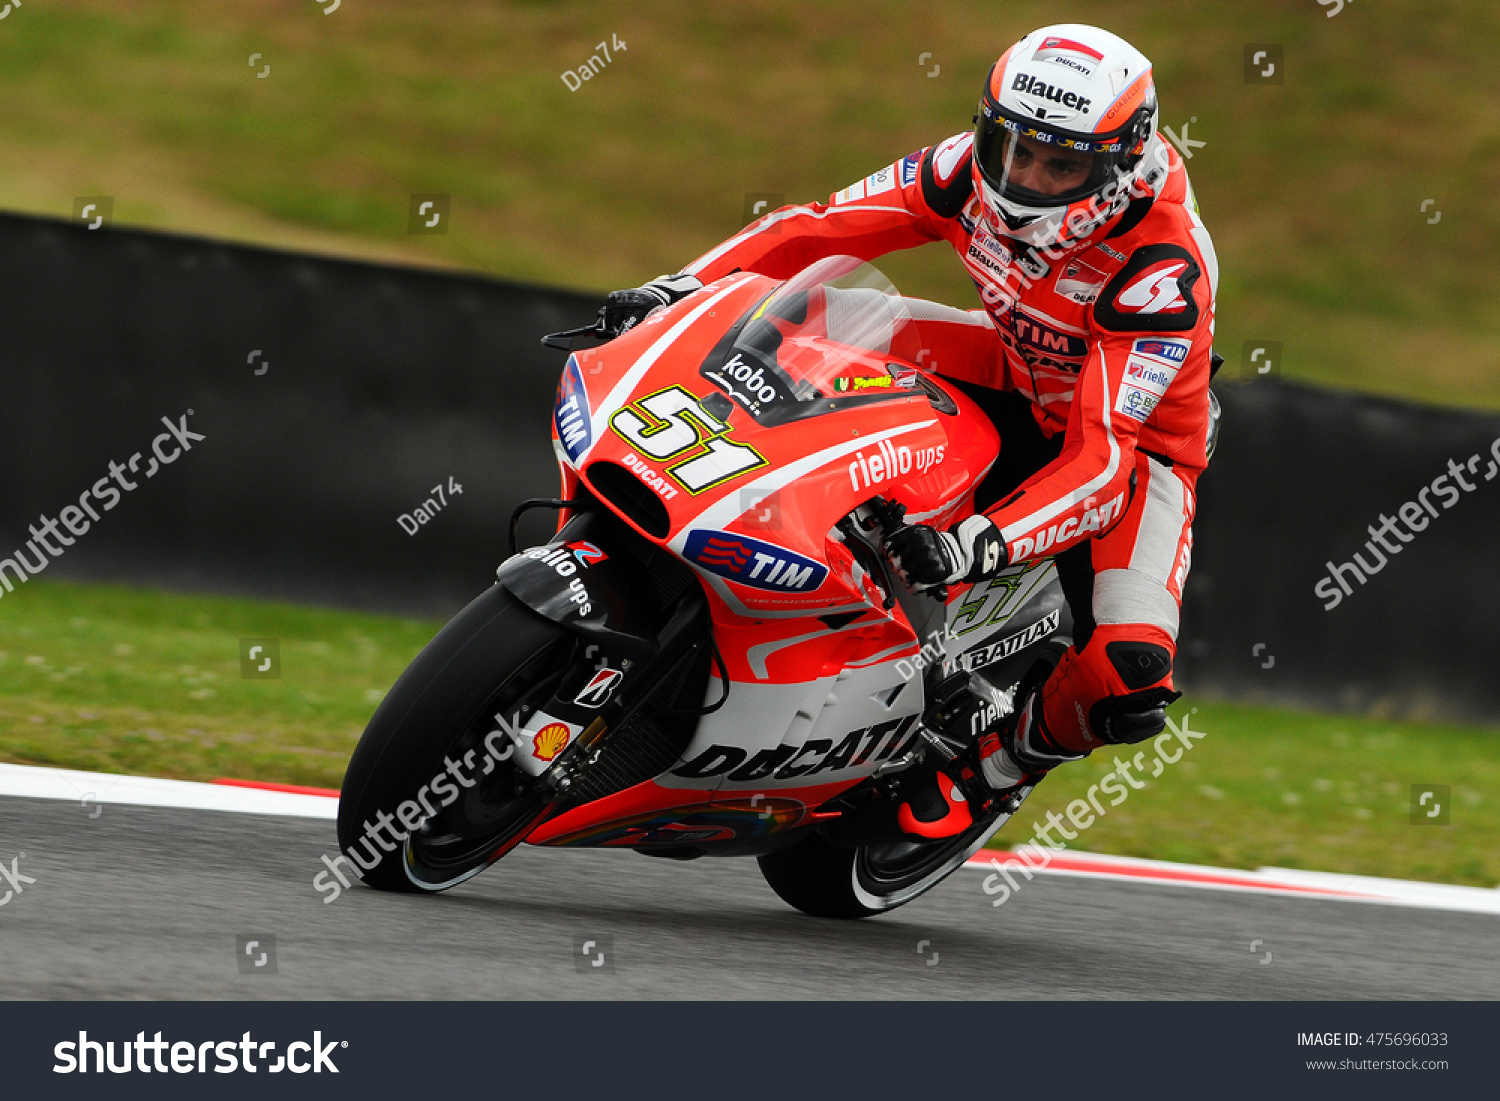 Circuit Italia Motogp : Mugello italia may italian ducati stock photo edit now